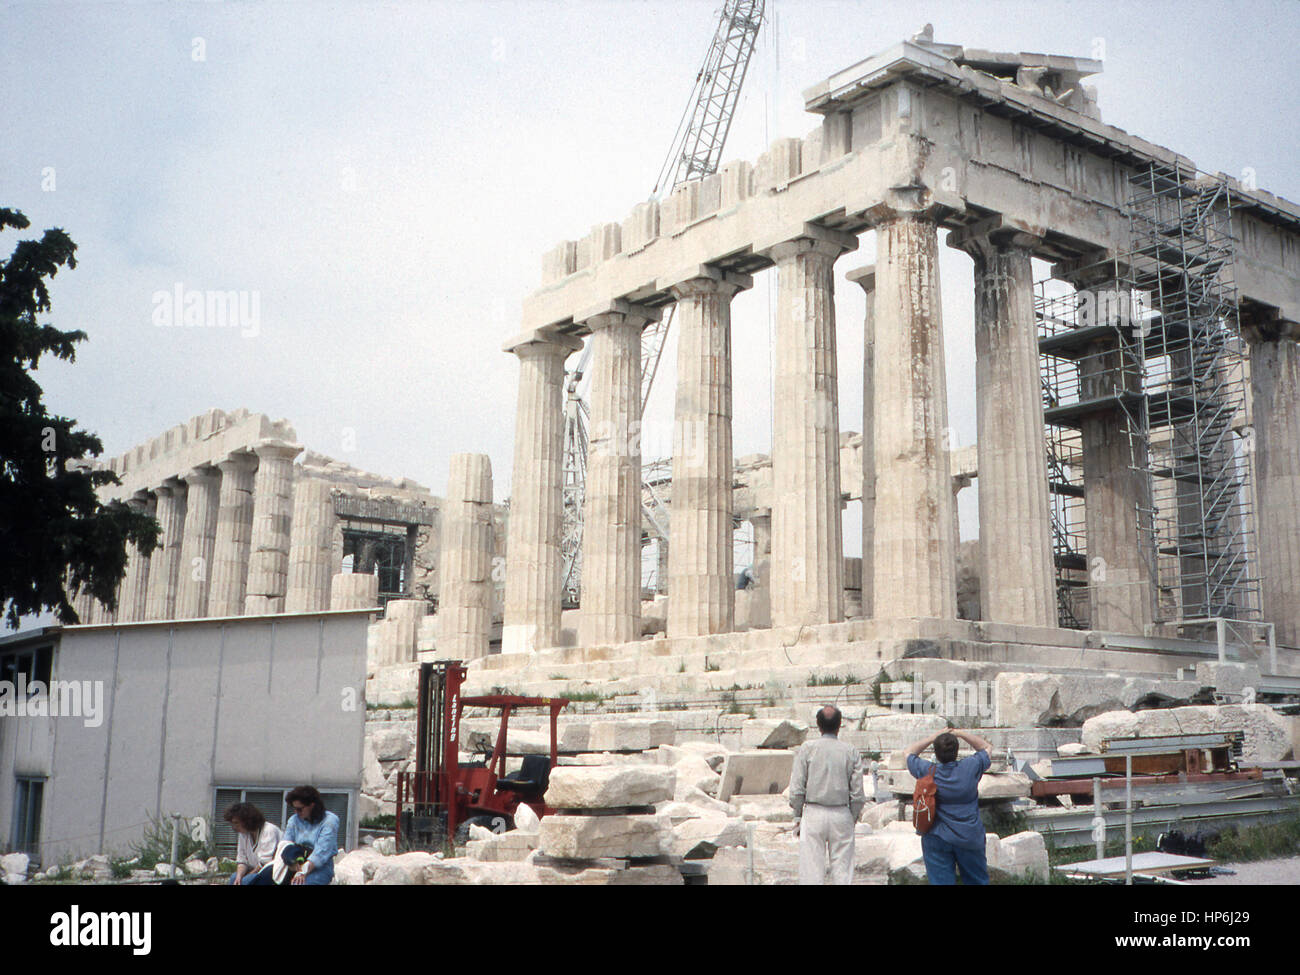 This photo, taken around 1990, shows a front view of the Acropolis in Athens, Greece. The Acropolis in Athens, Greece, Stock Photo